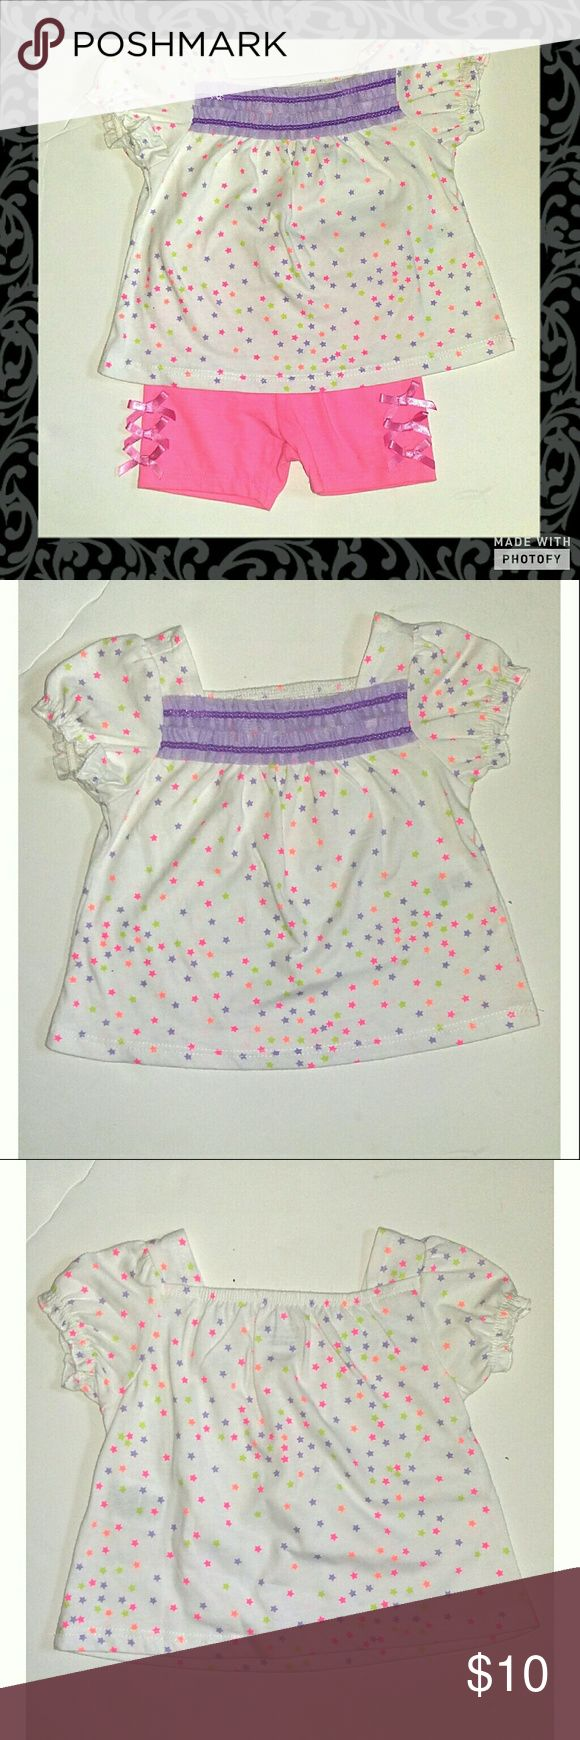 🍒2 For $15🍒Bright Stars Top & Shorts Outfit Top is white with little stars all over it and purple tule design on neck line. Shorts are bike shorts with little bows on the sides. New without tags. Size 12 months. Polyester cotton blend material. Wonder kids  Matching Sets